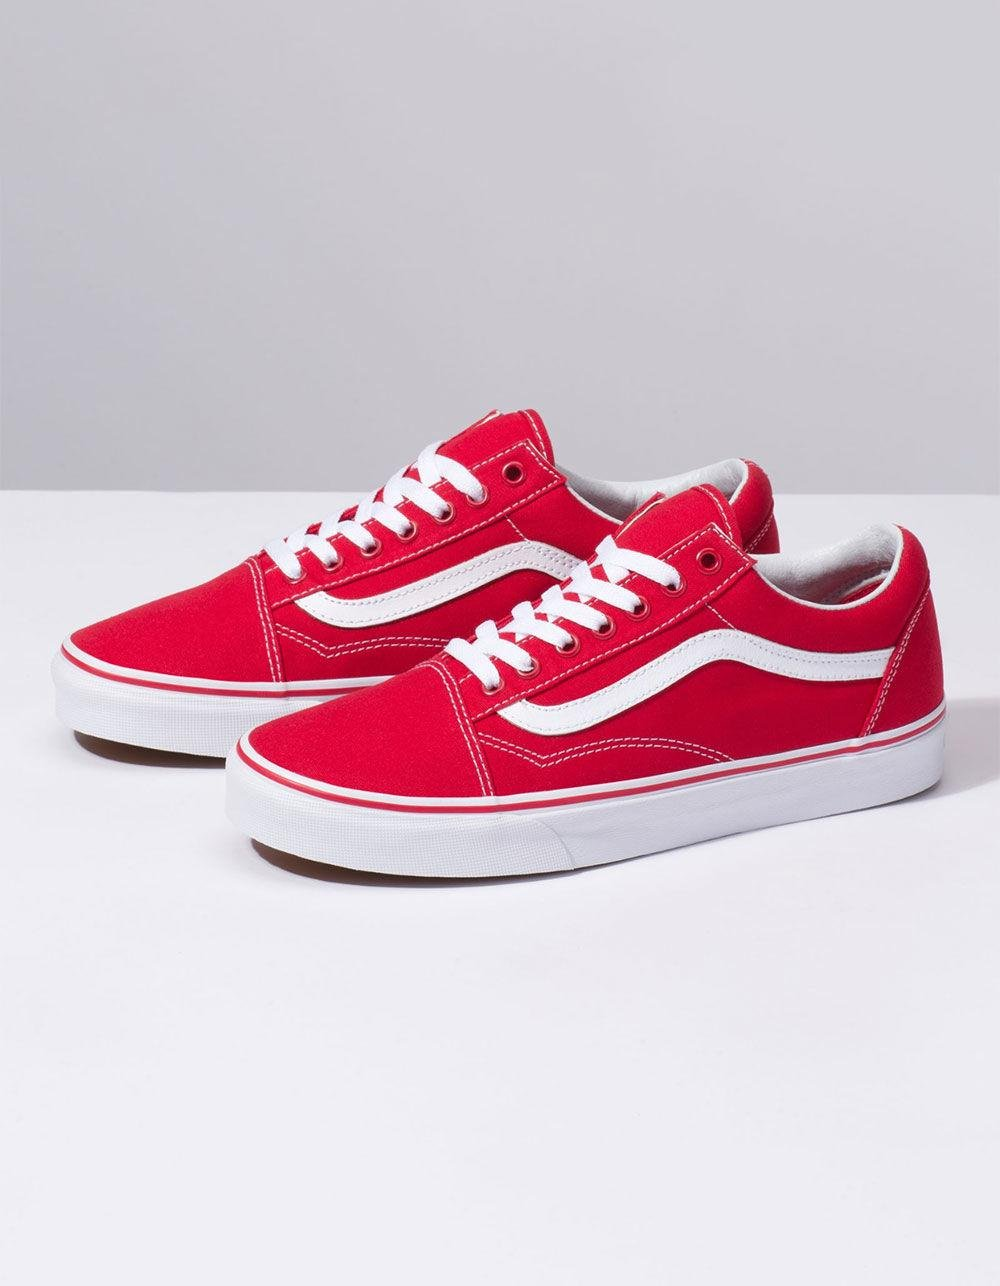 809071a7e498 Lyst - Vans Canvas Old Skool Formula One Shoes in Red